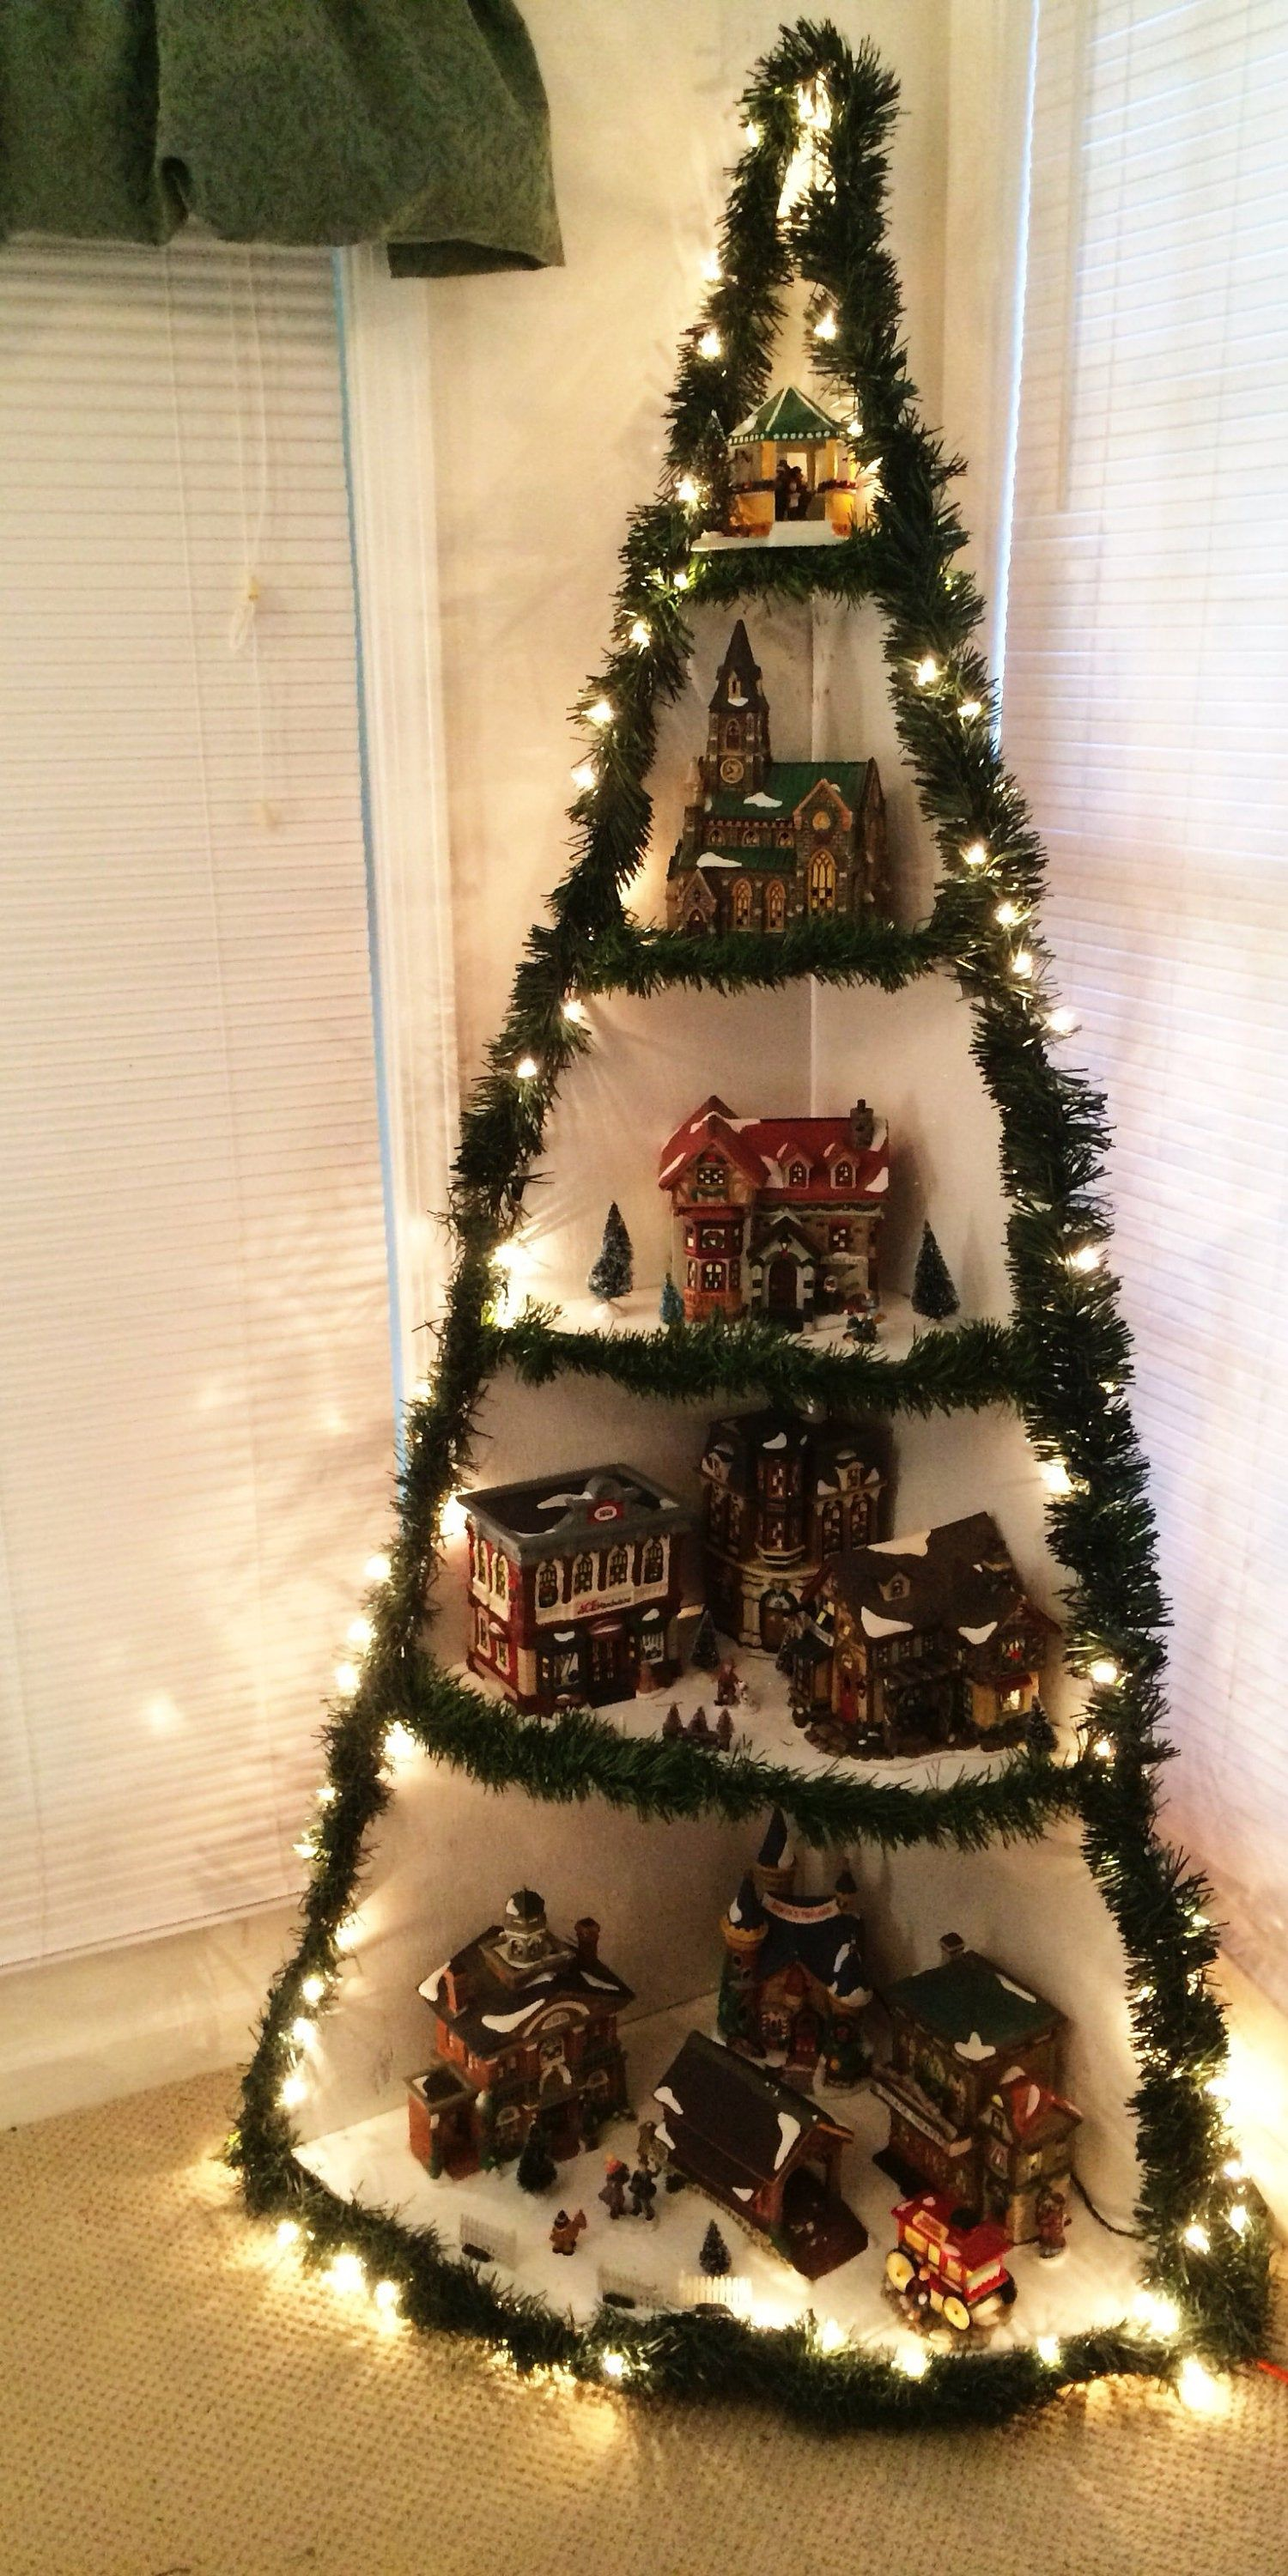 Christmas Village Display Tutorial Wooden Christmas Tree Image 1 Diy Christmas Village Diy Christmas Village Displays Christmas Village Display